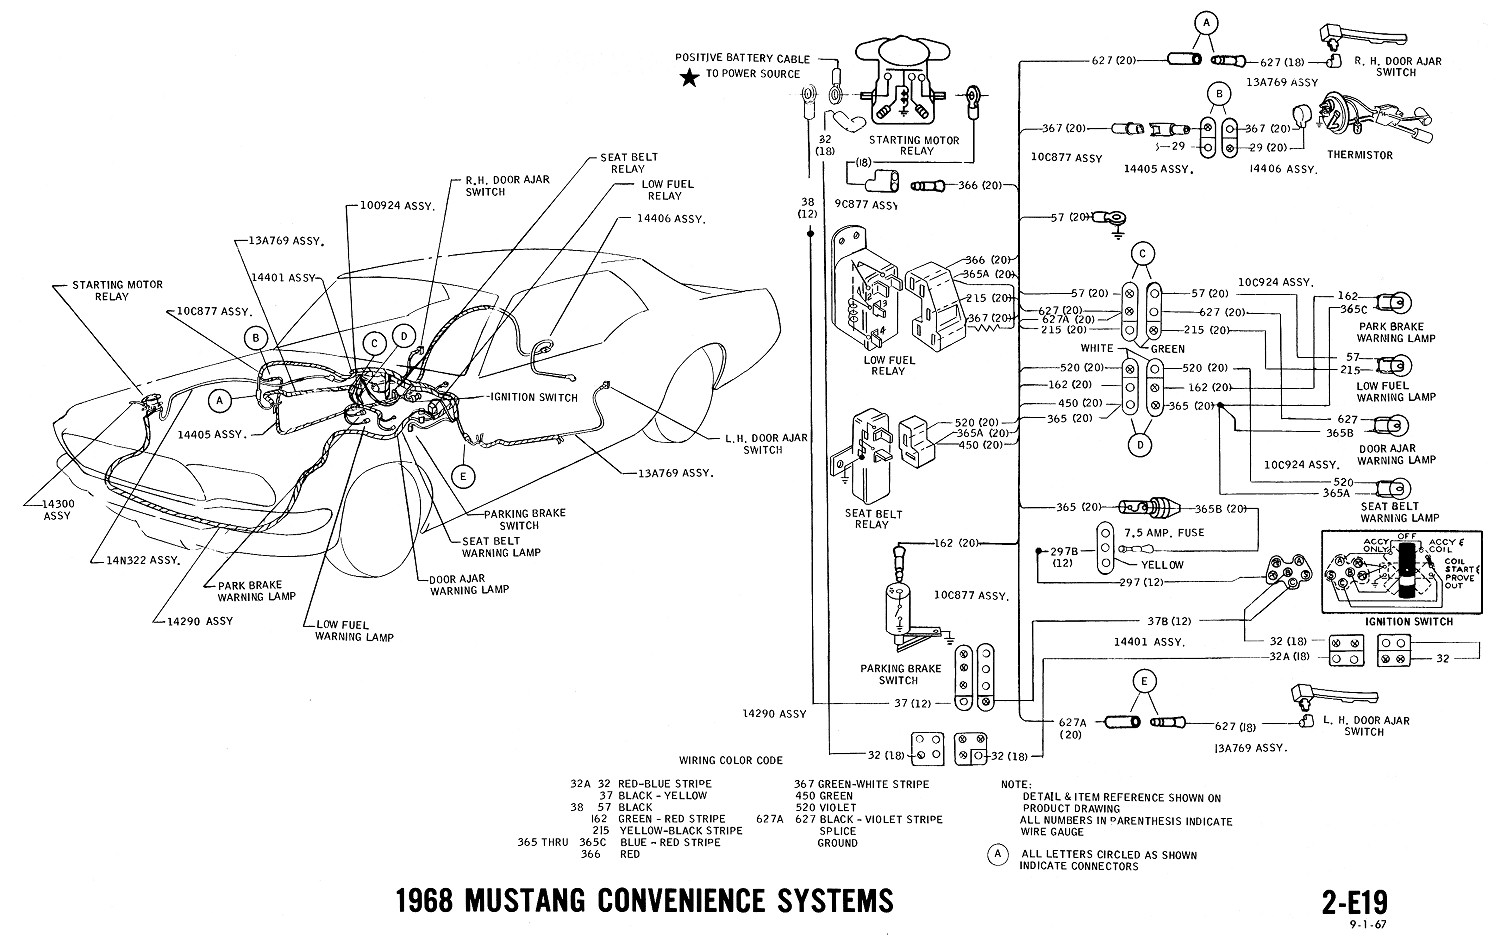 E19 1968 mustang wiring diagrams evolving software 1966 mustang heater wiring diagram at bayanpartner.co